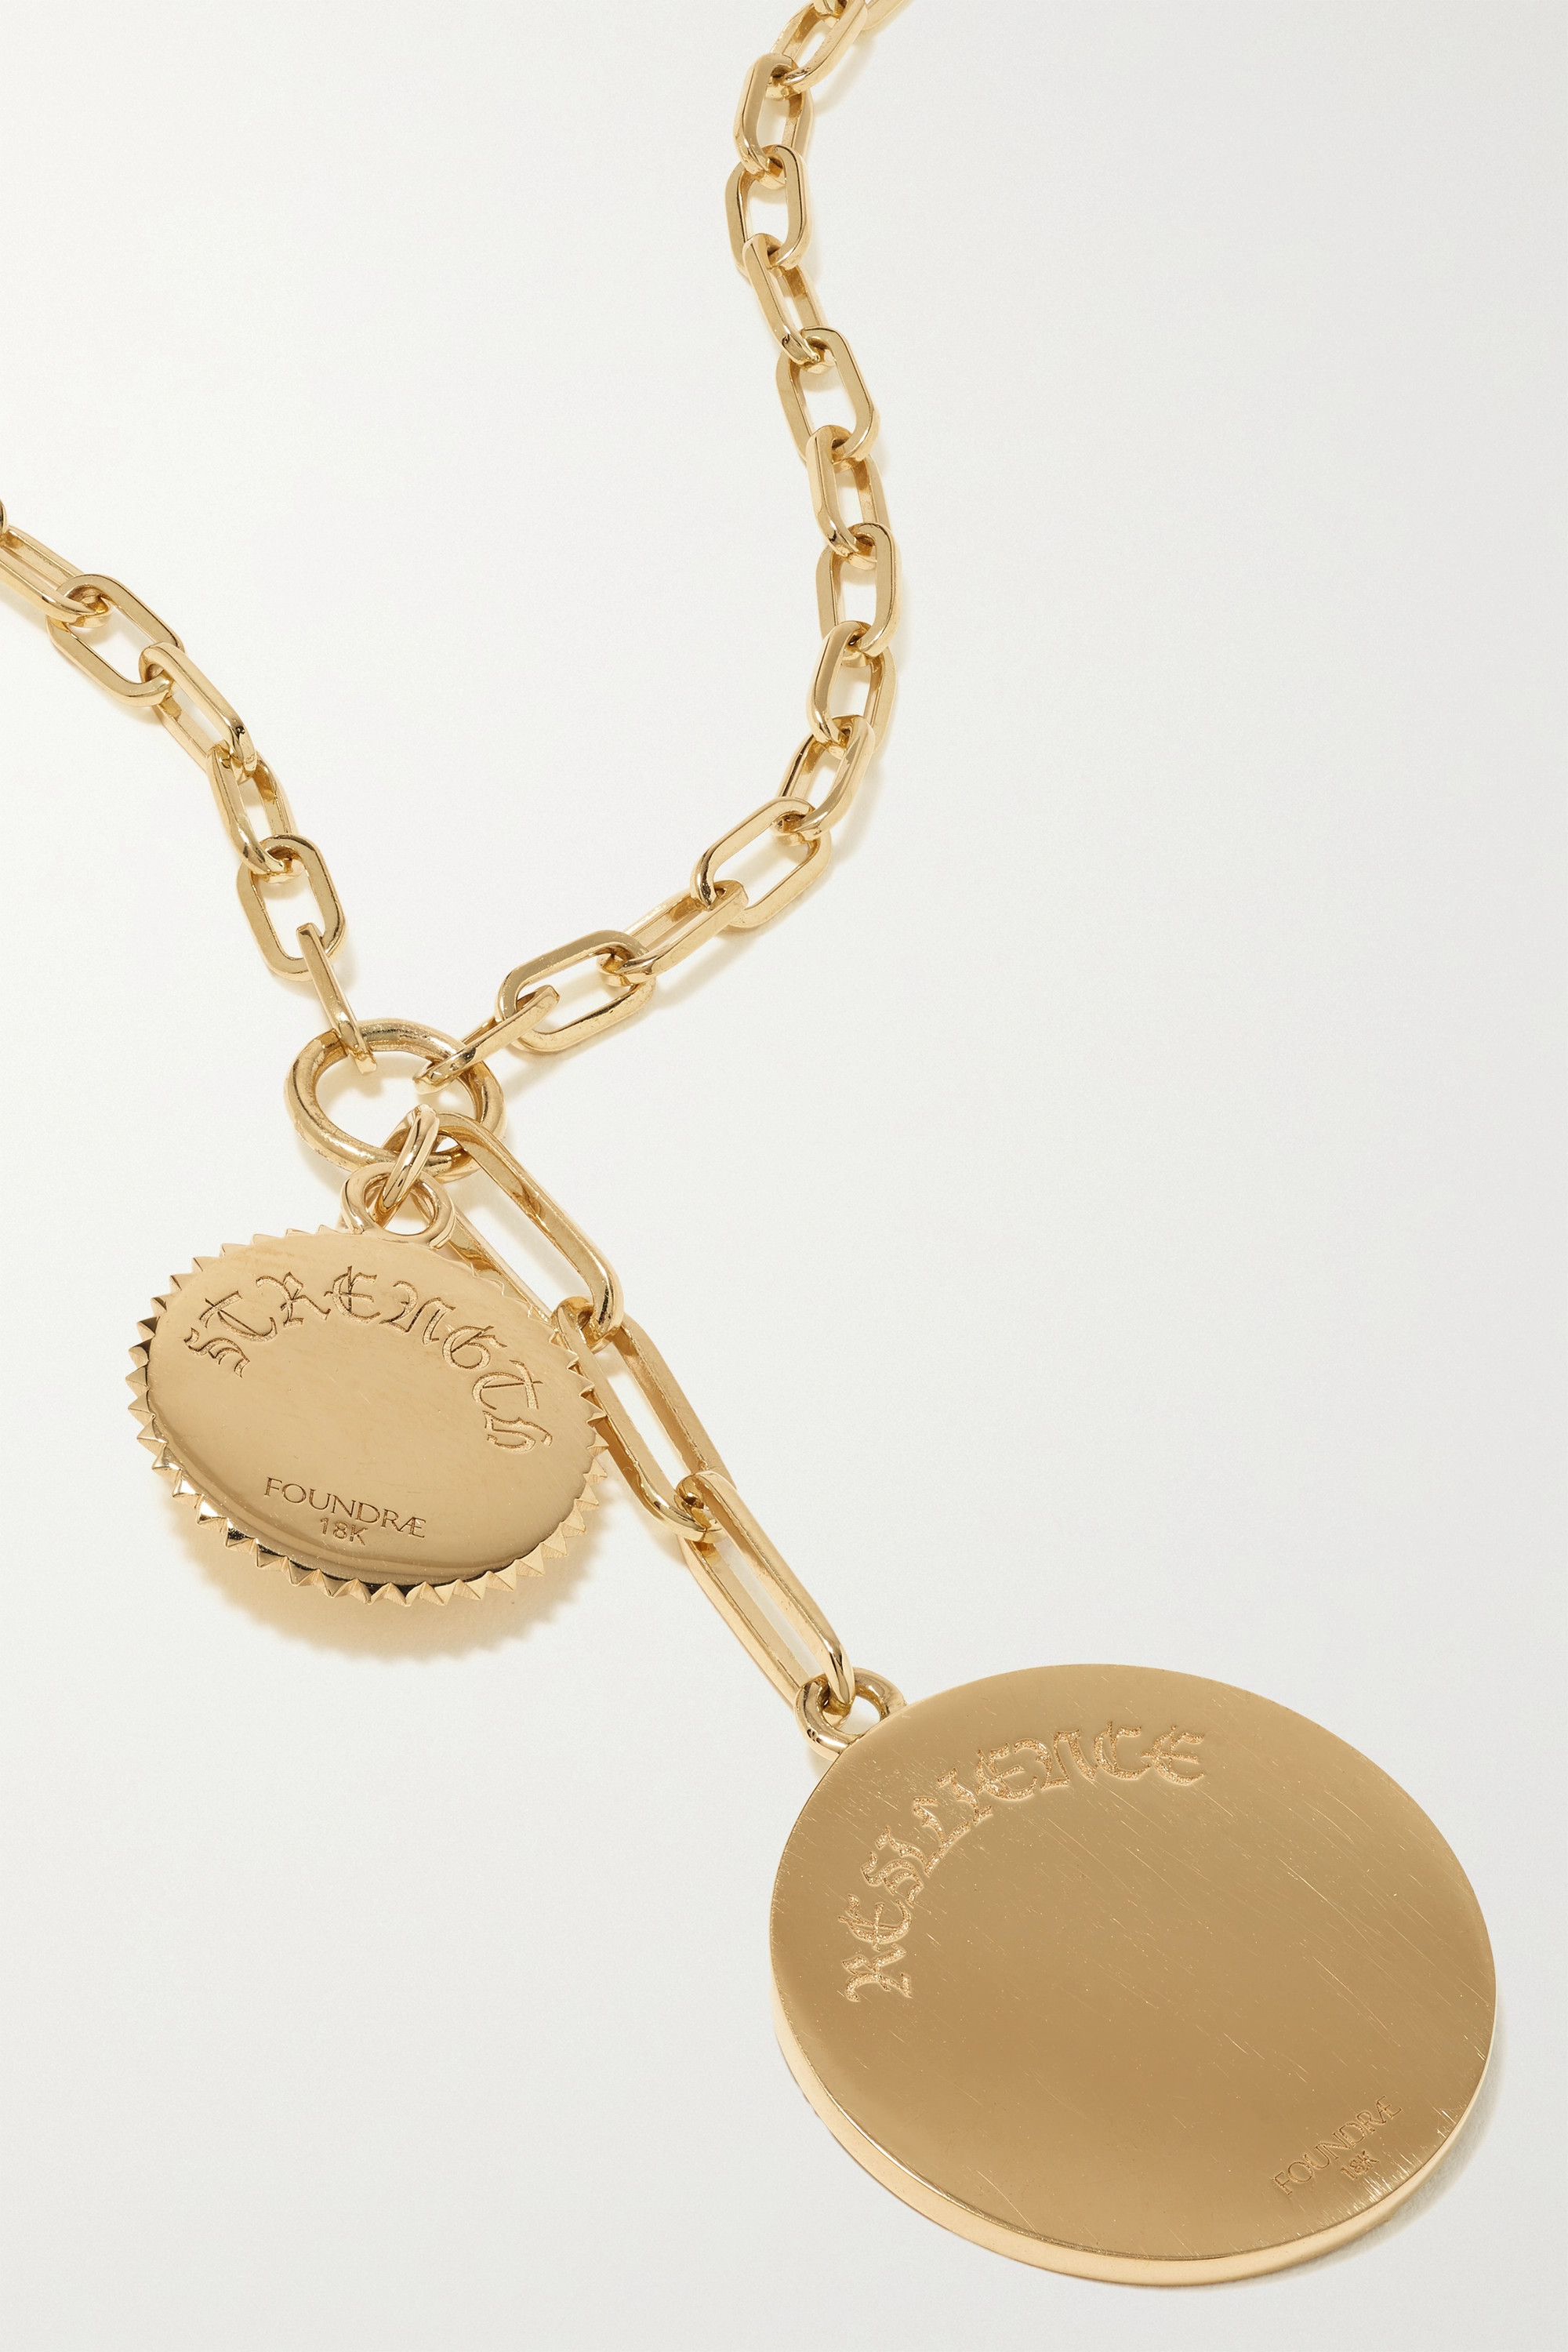 Foundrae Resilience and Strength 18-karat gold, enamel and diamond necklace